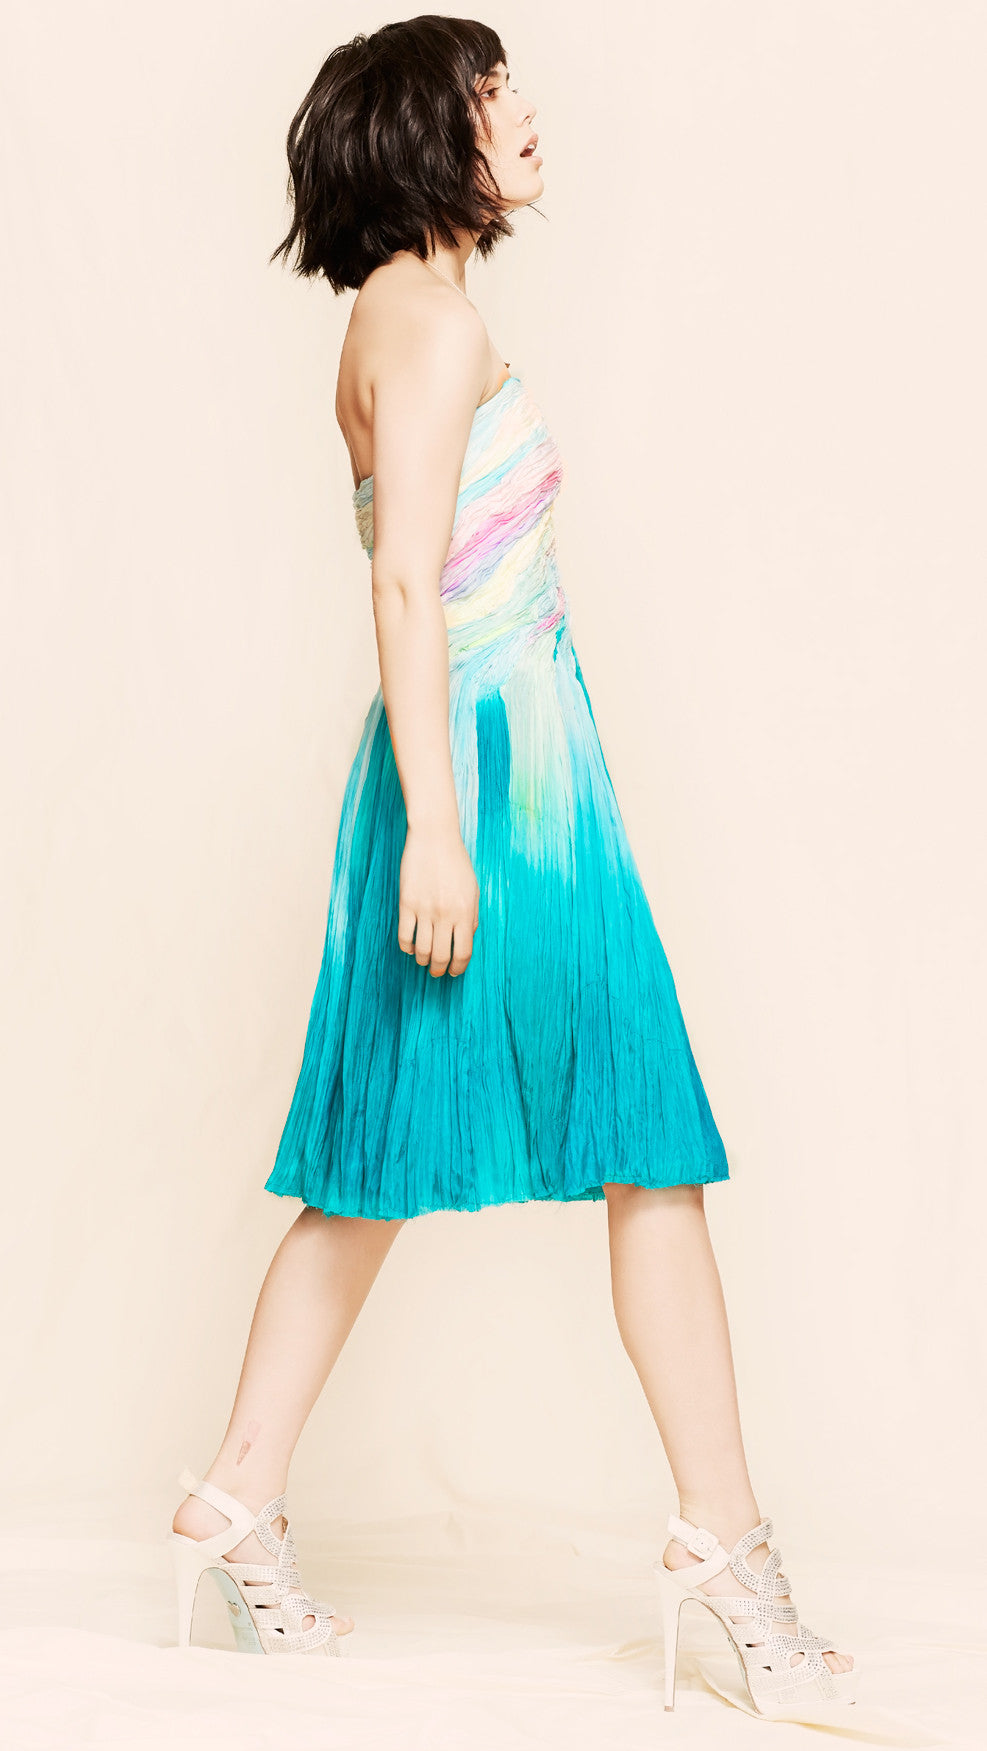 oda - cotton candy strapless dress - side view